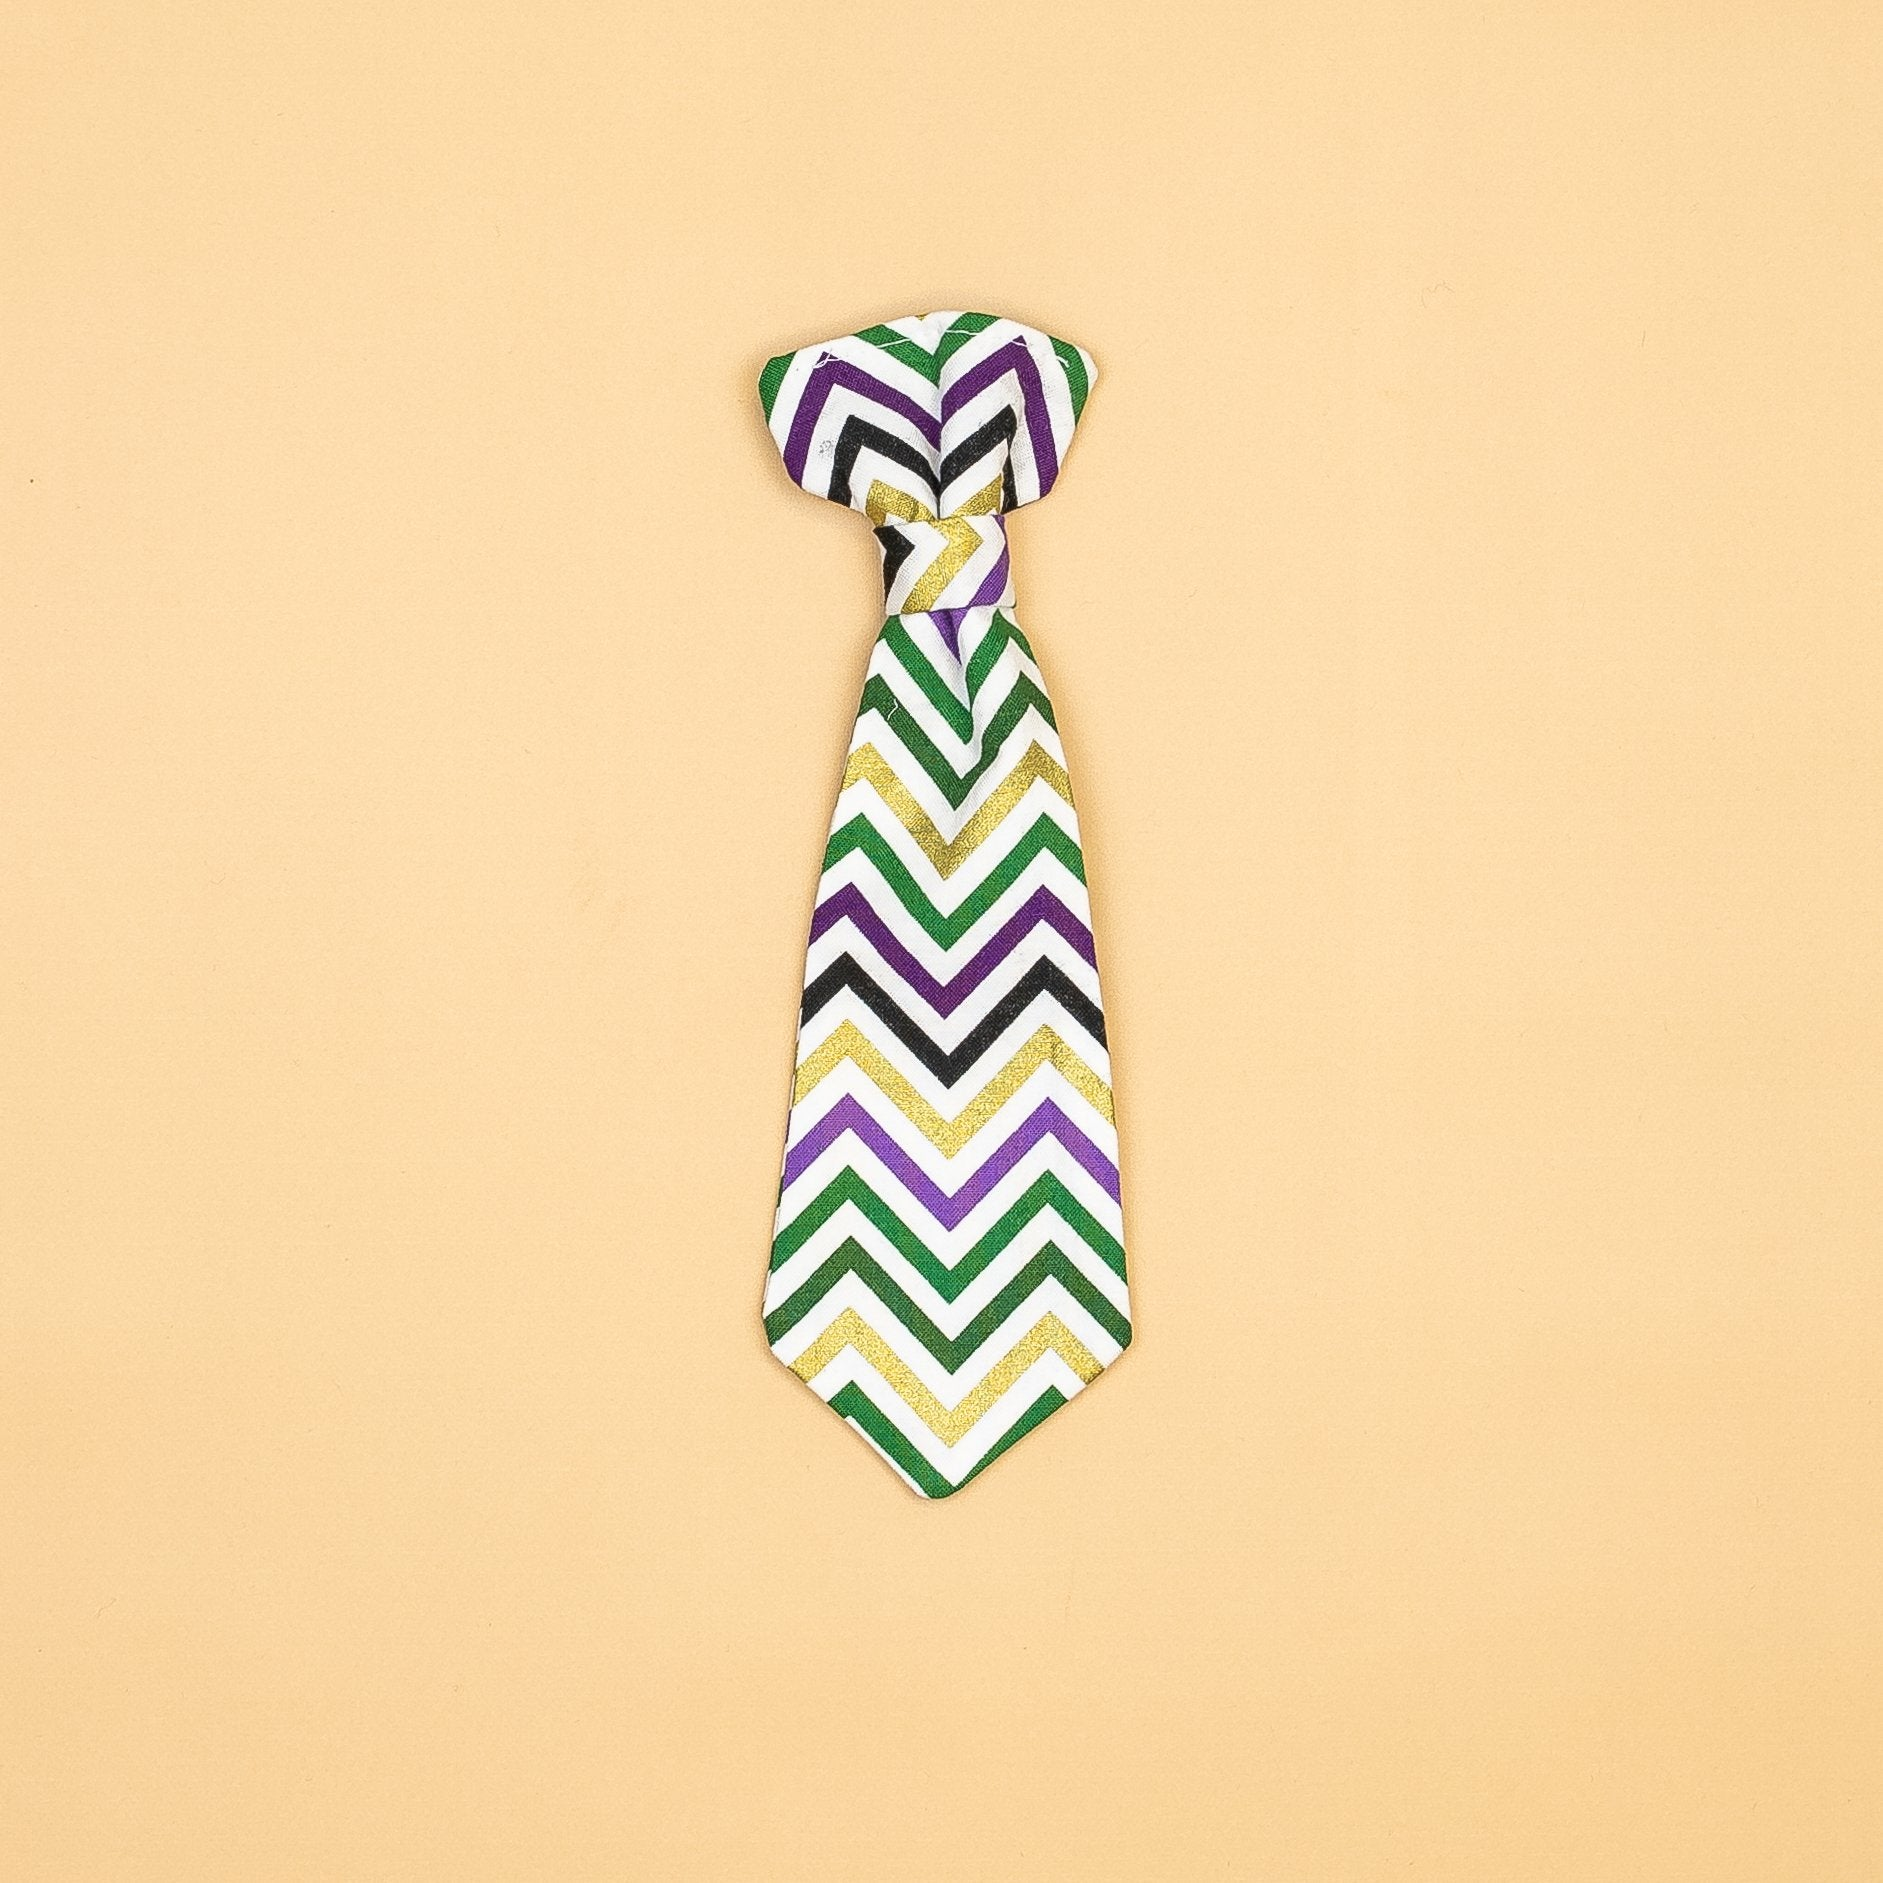 Cuddle Sleep Dream extras Mardis Gras Snap-On Ties